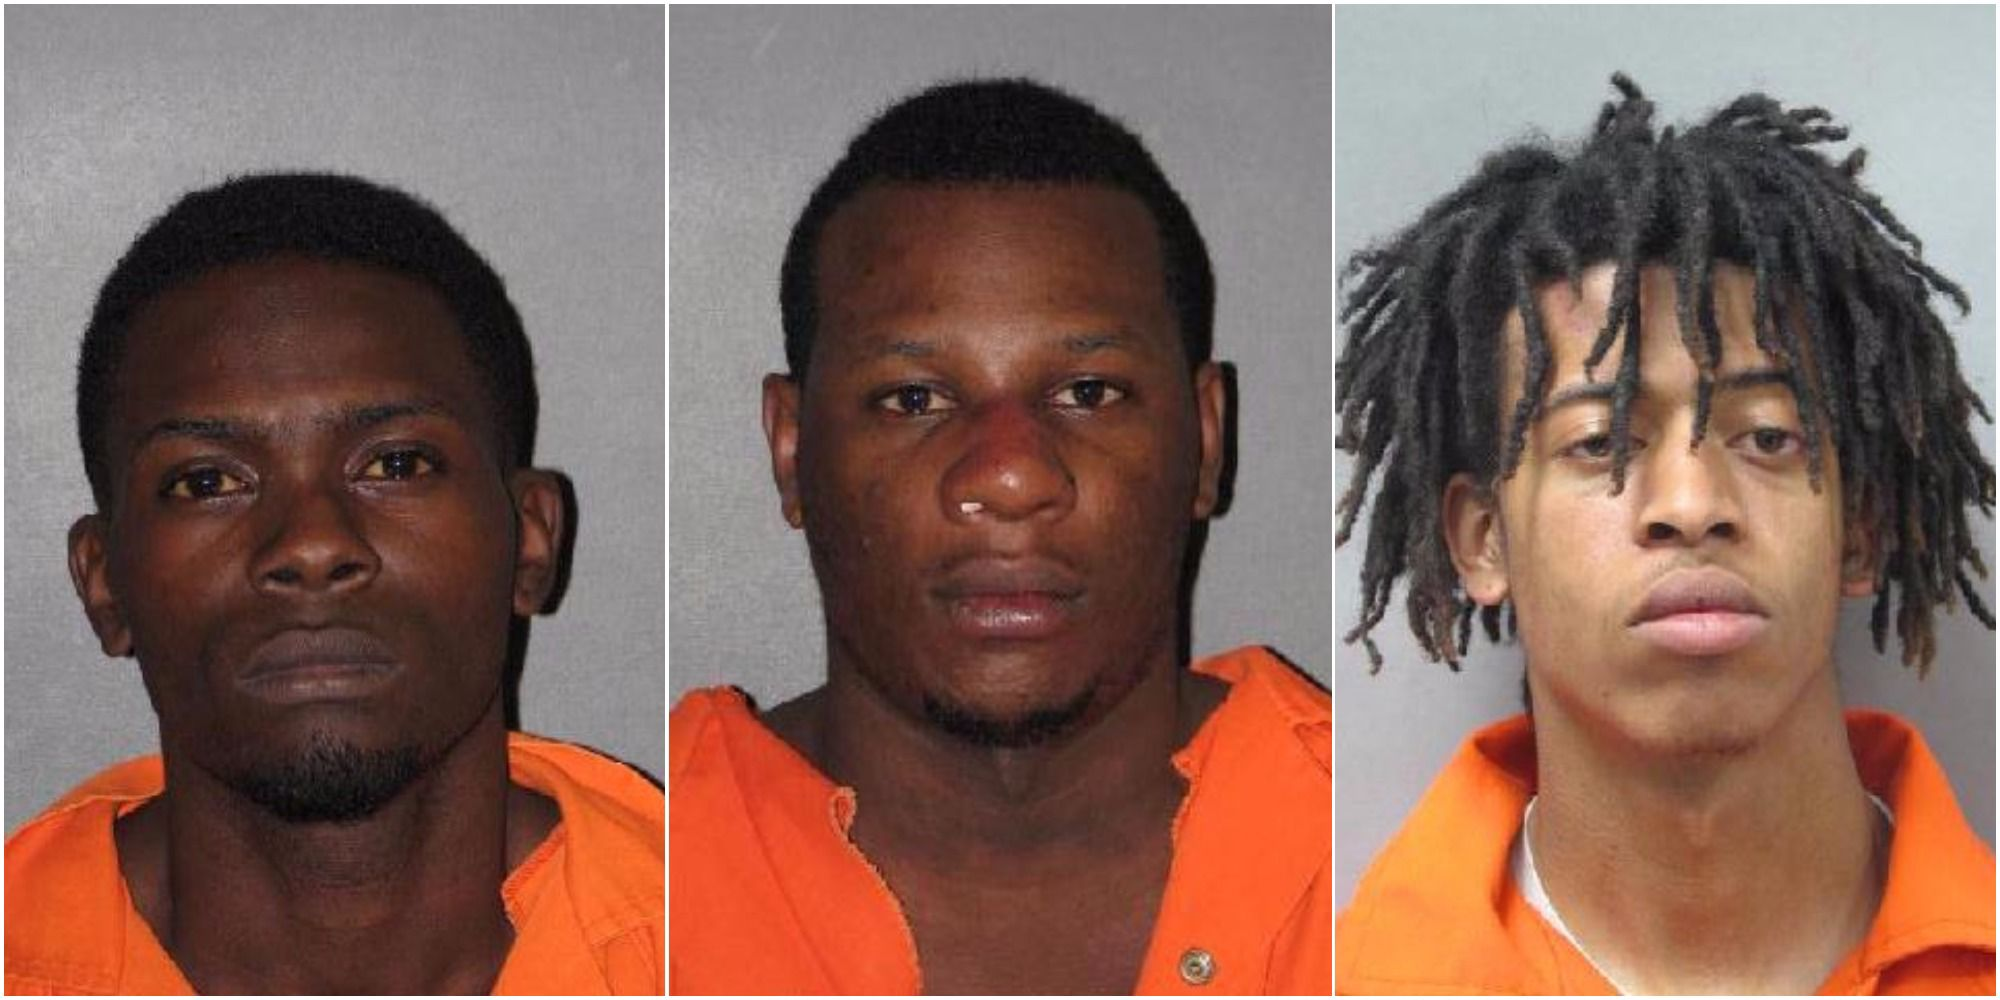 Baton Rouge work release inmate captured at Metairie parade